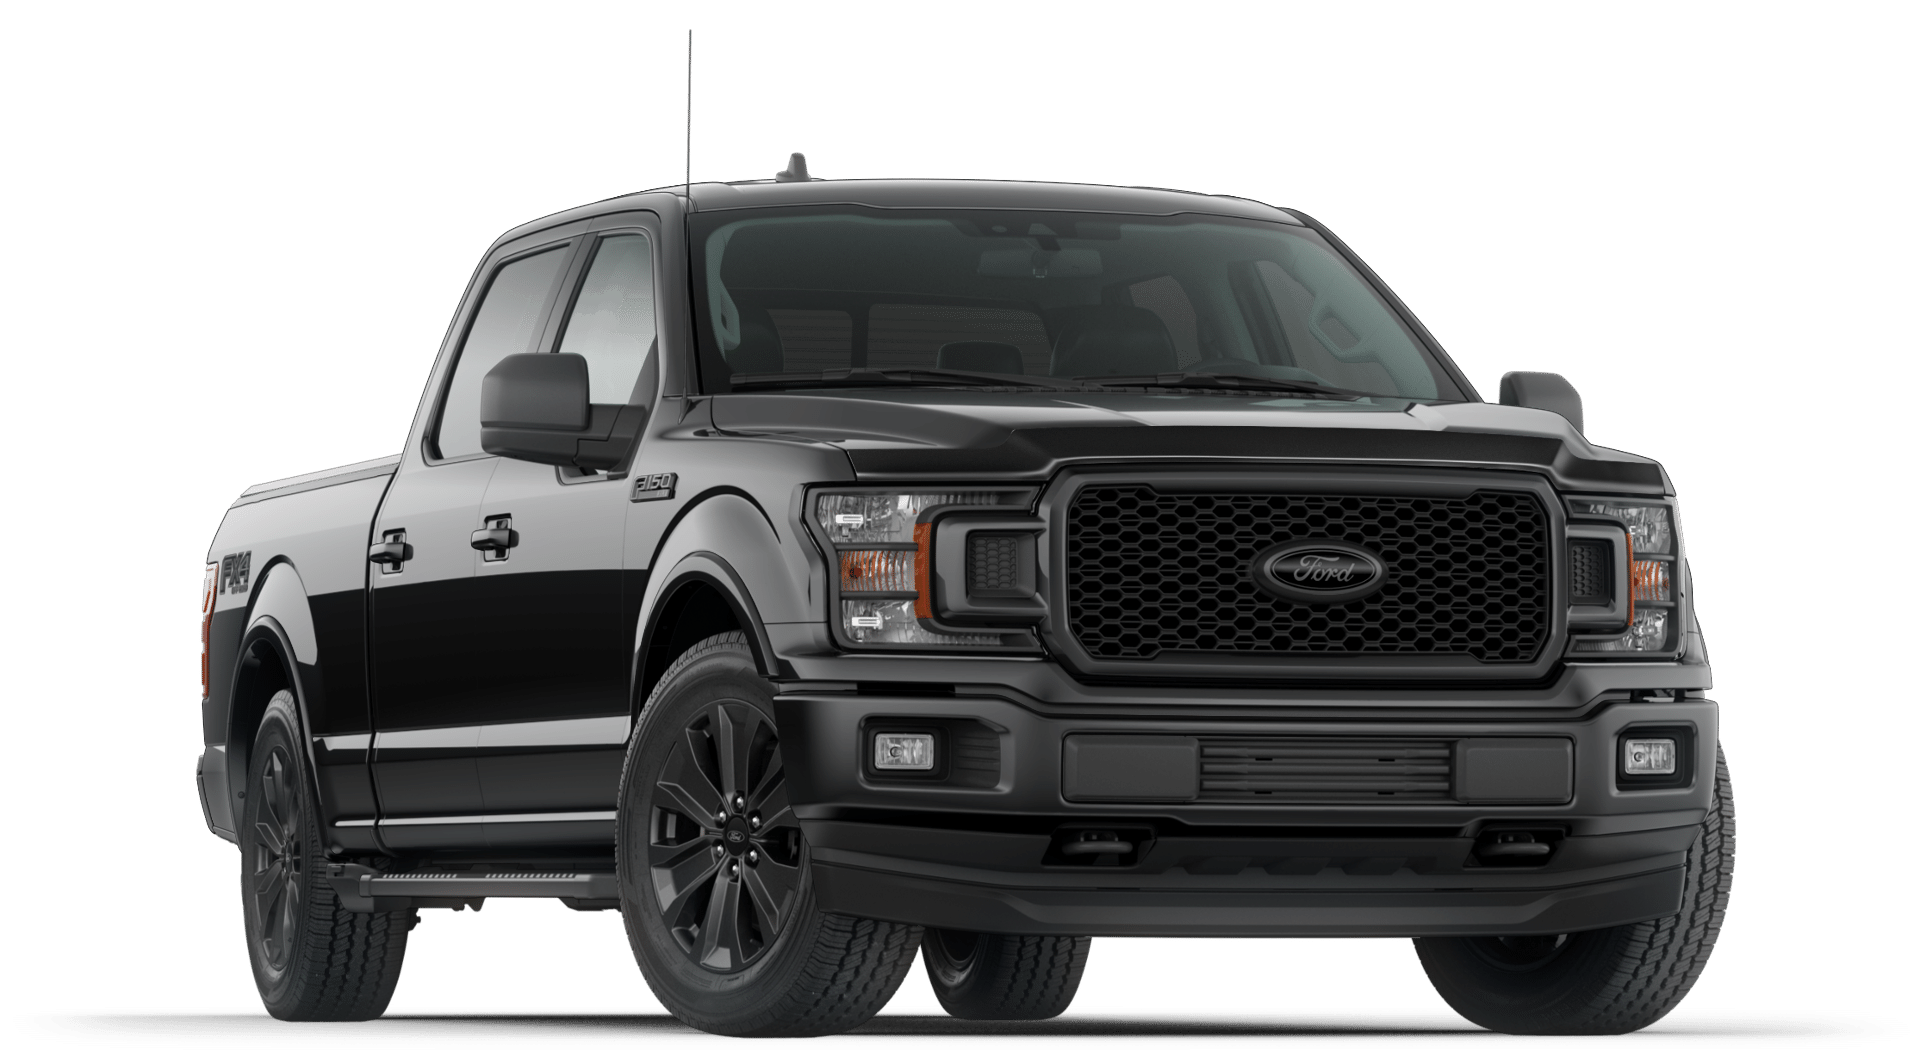 2020 Ford F 150 Build Price Ford F150 Commercial Vehicle Hybrid Car